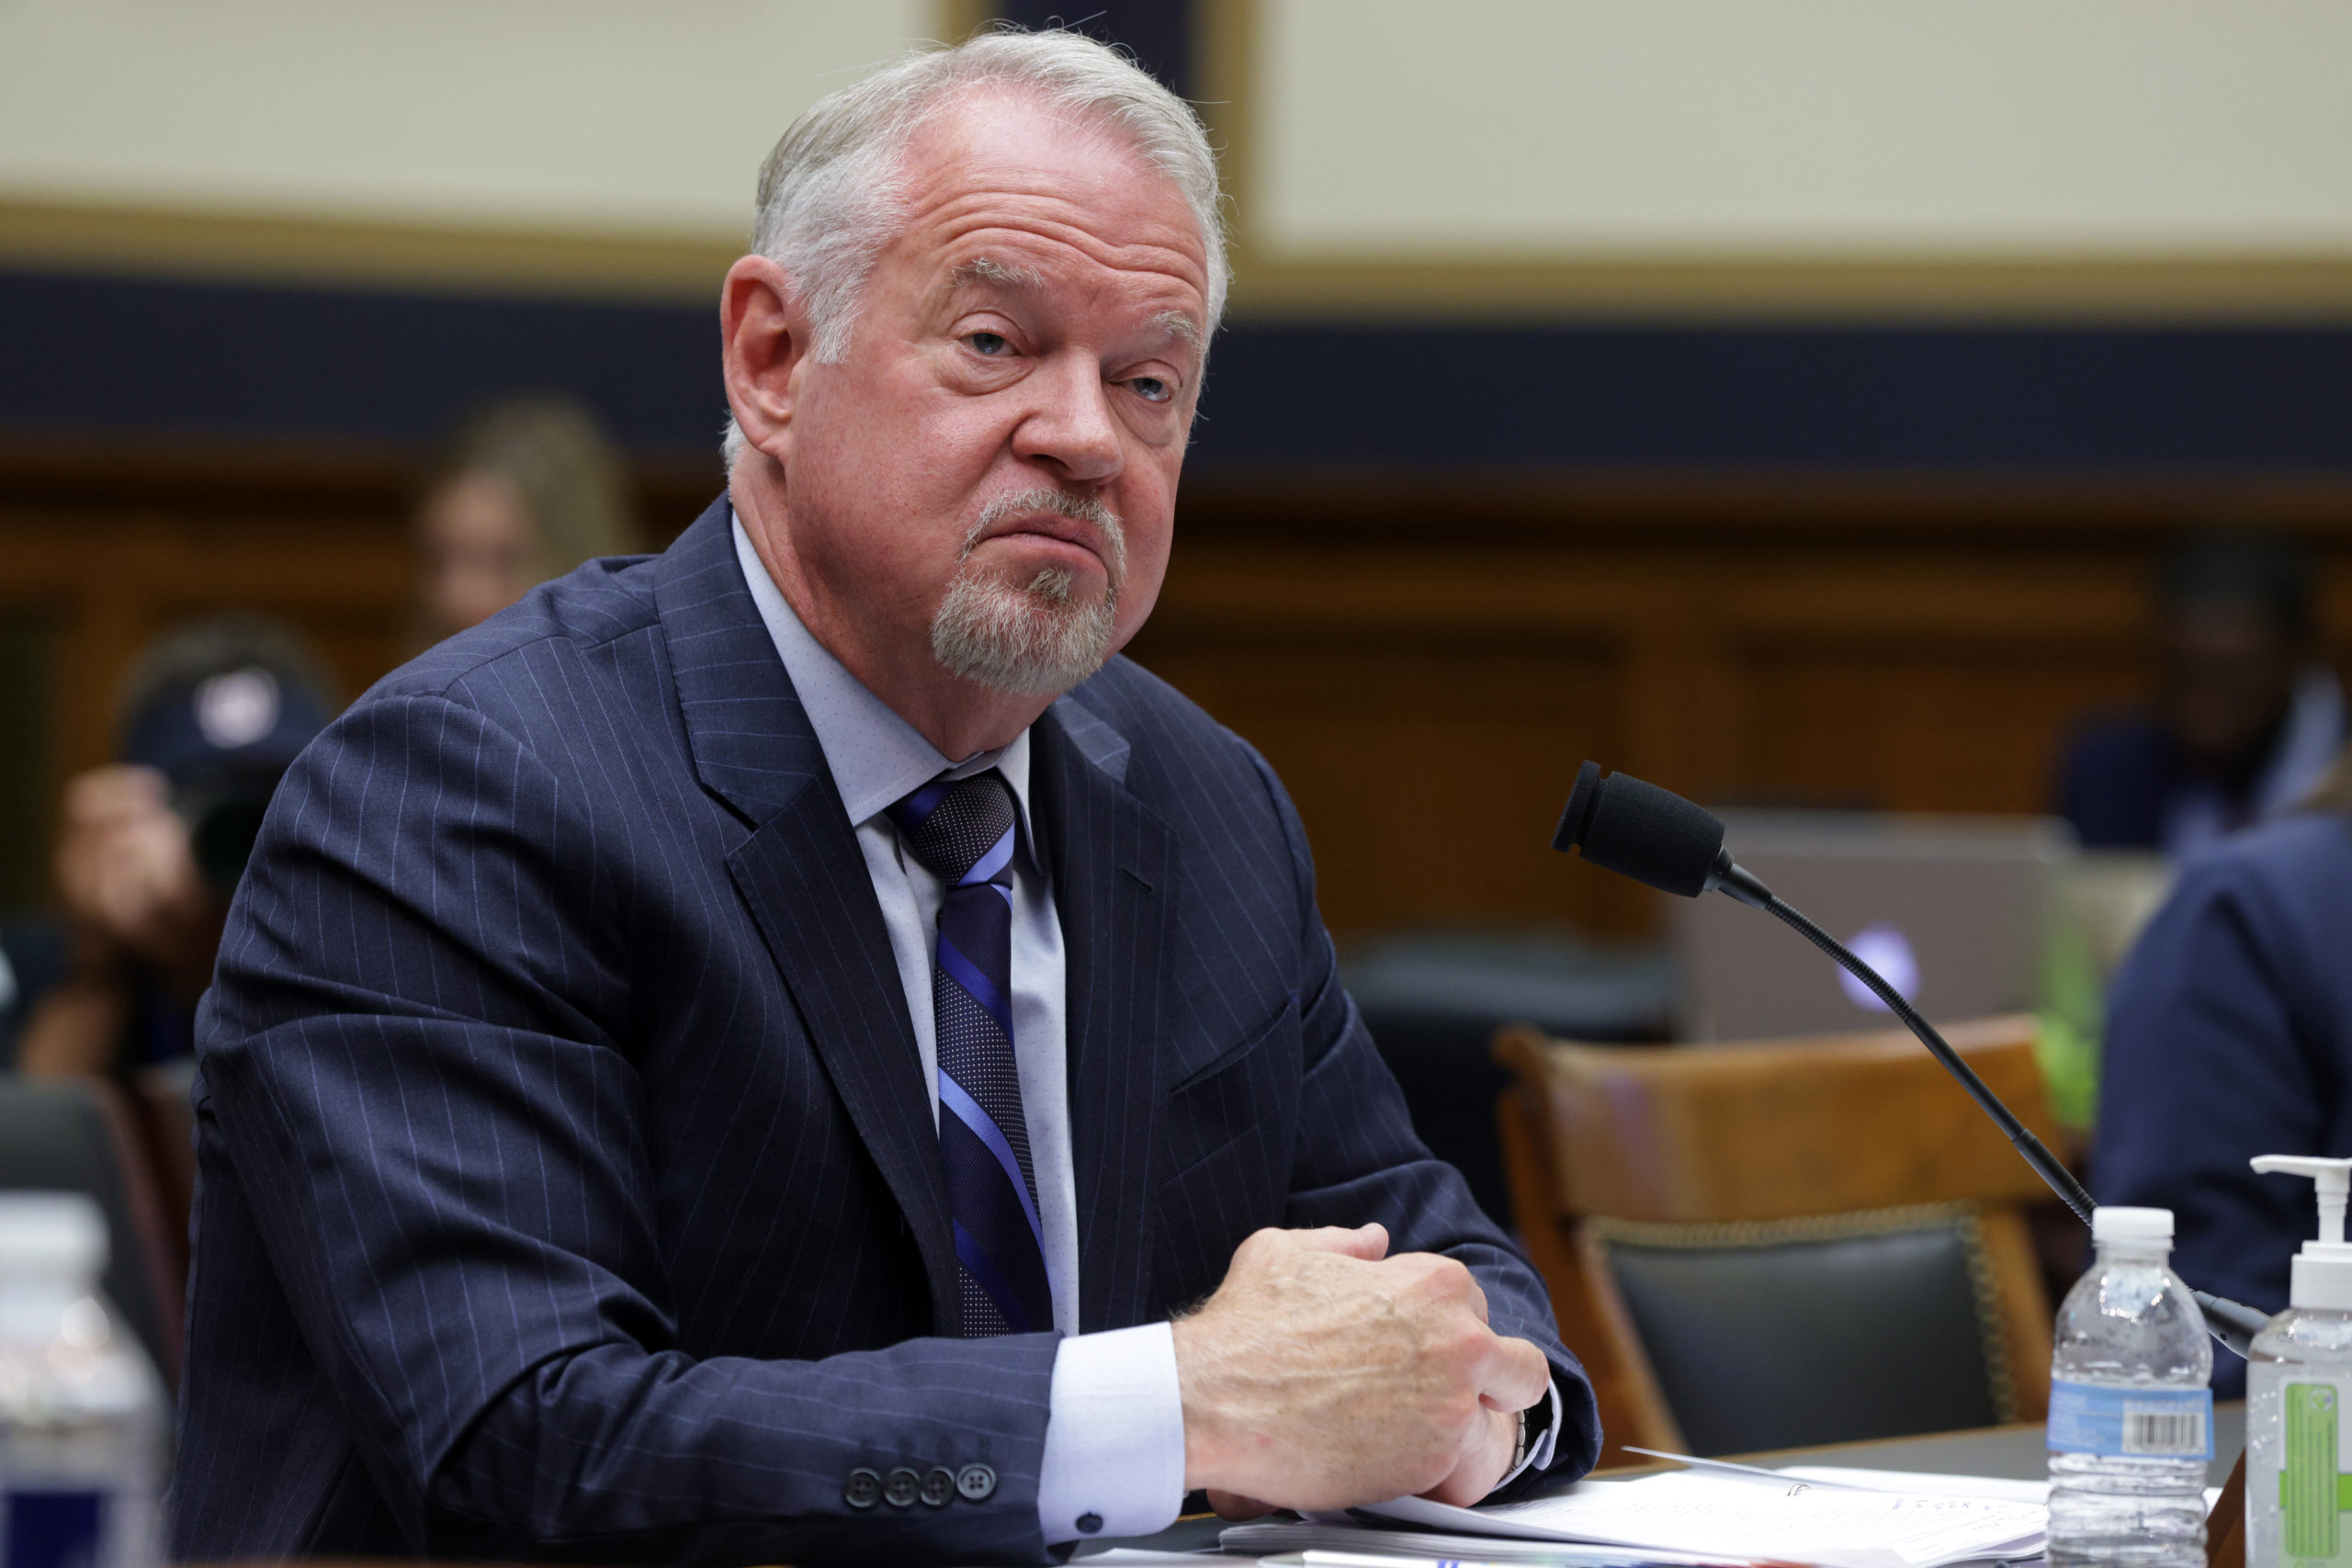 """WASHINGTON, DC - JUNE 30: Corporate Vice President of Customer Security & Trust at Microsoft Tom Burt testifies during a hearing before the House Judiciary Committee at Rayburn House Office Building June 30, 2021 in Washington, DC. The committee held a hearing to examine """"Secrecy Orders and Prosecuting Leaks: Potential Legislative Responses to Deter Prosecutorial Abuse of Power."""" (Photo by Alex Wong/Getty Images)"""